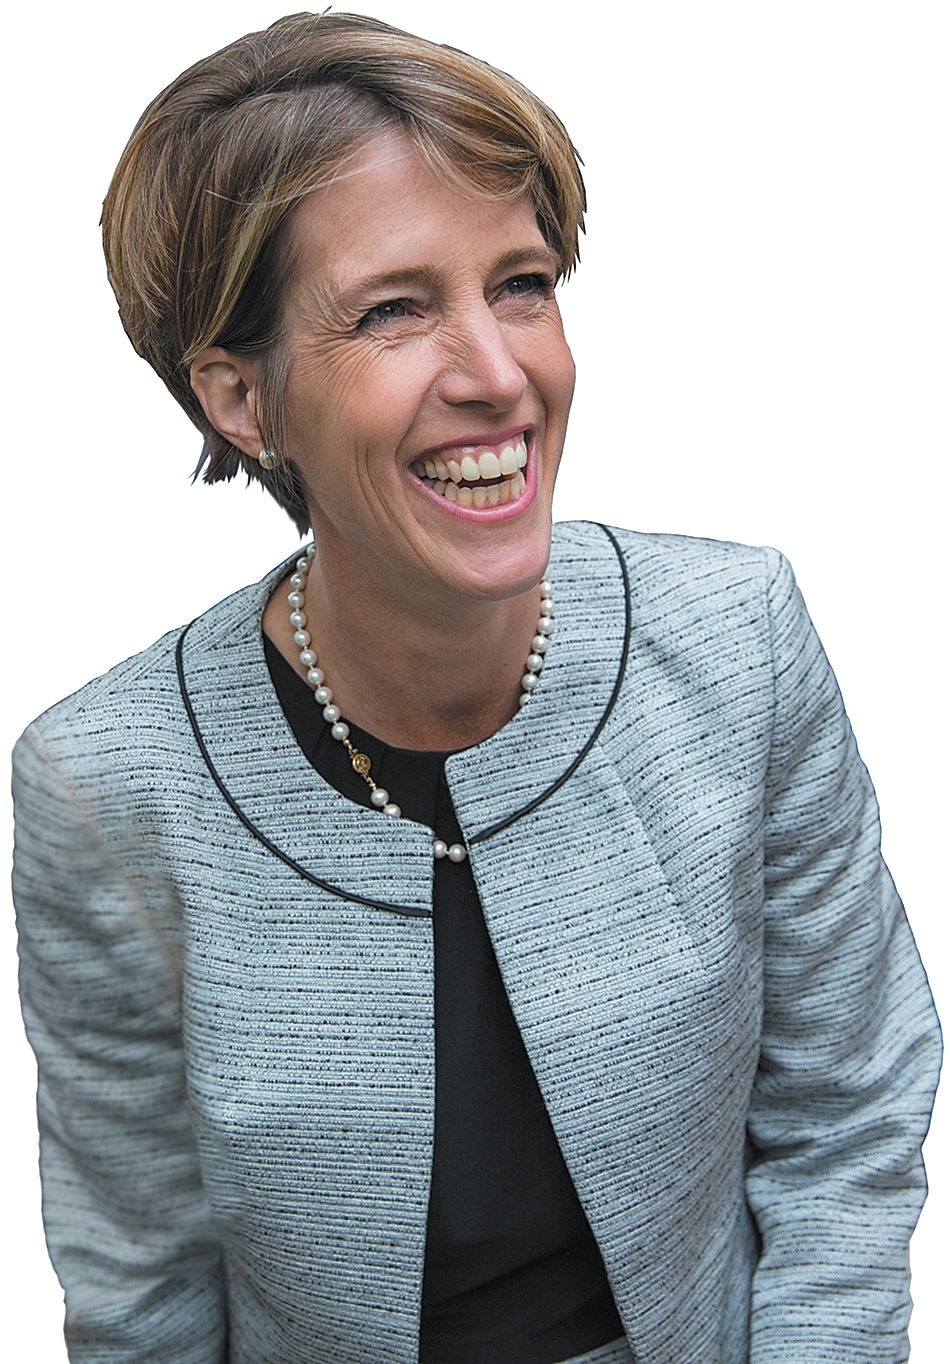 Zephyr Teachout during her campaign for governor against Andrew Cuomo, New York City, September 2014